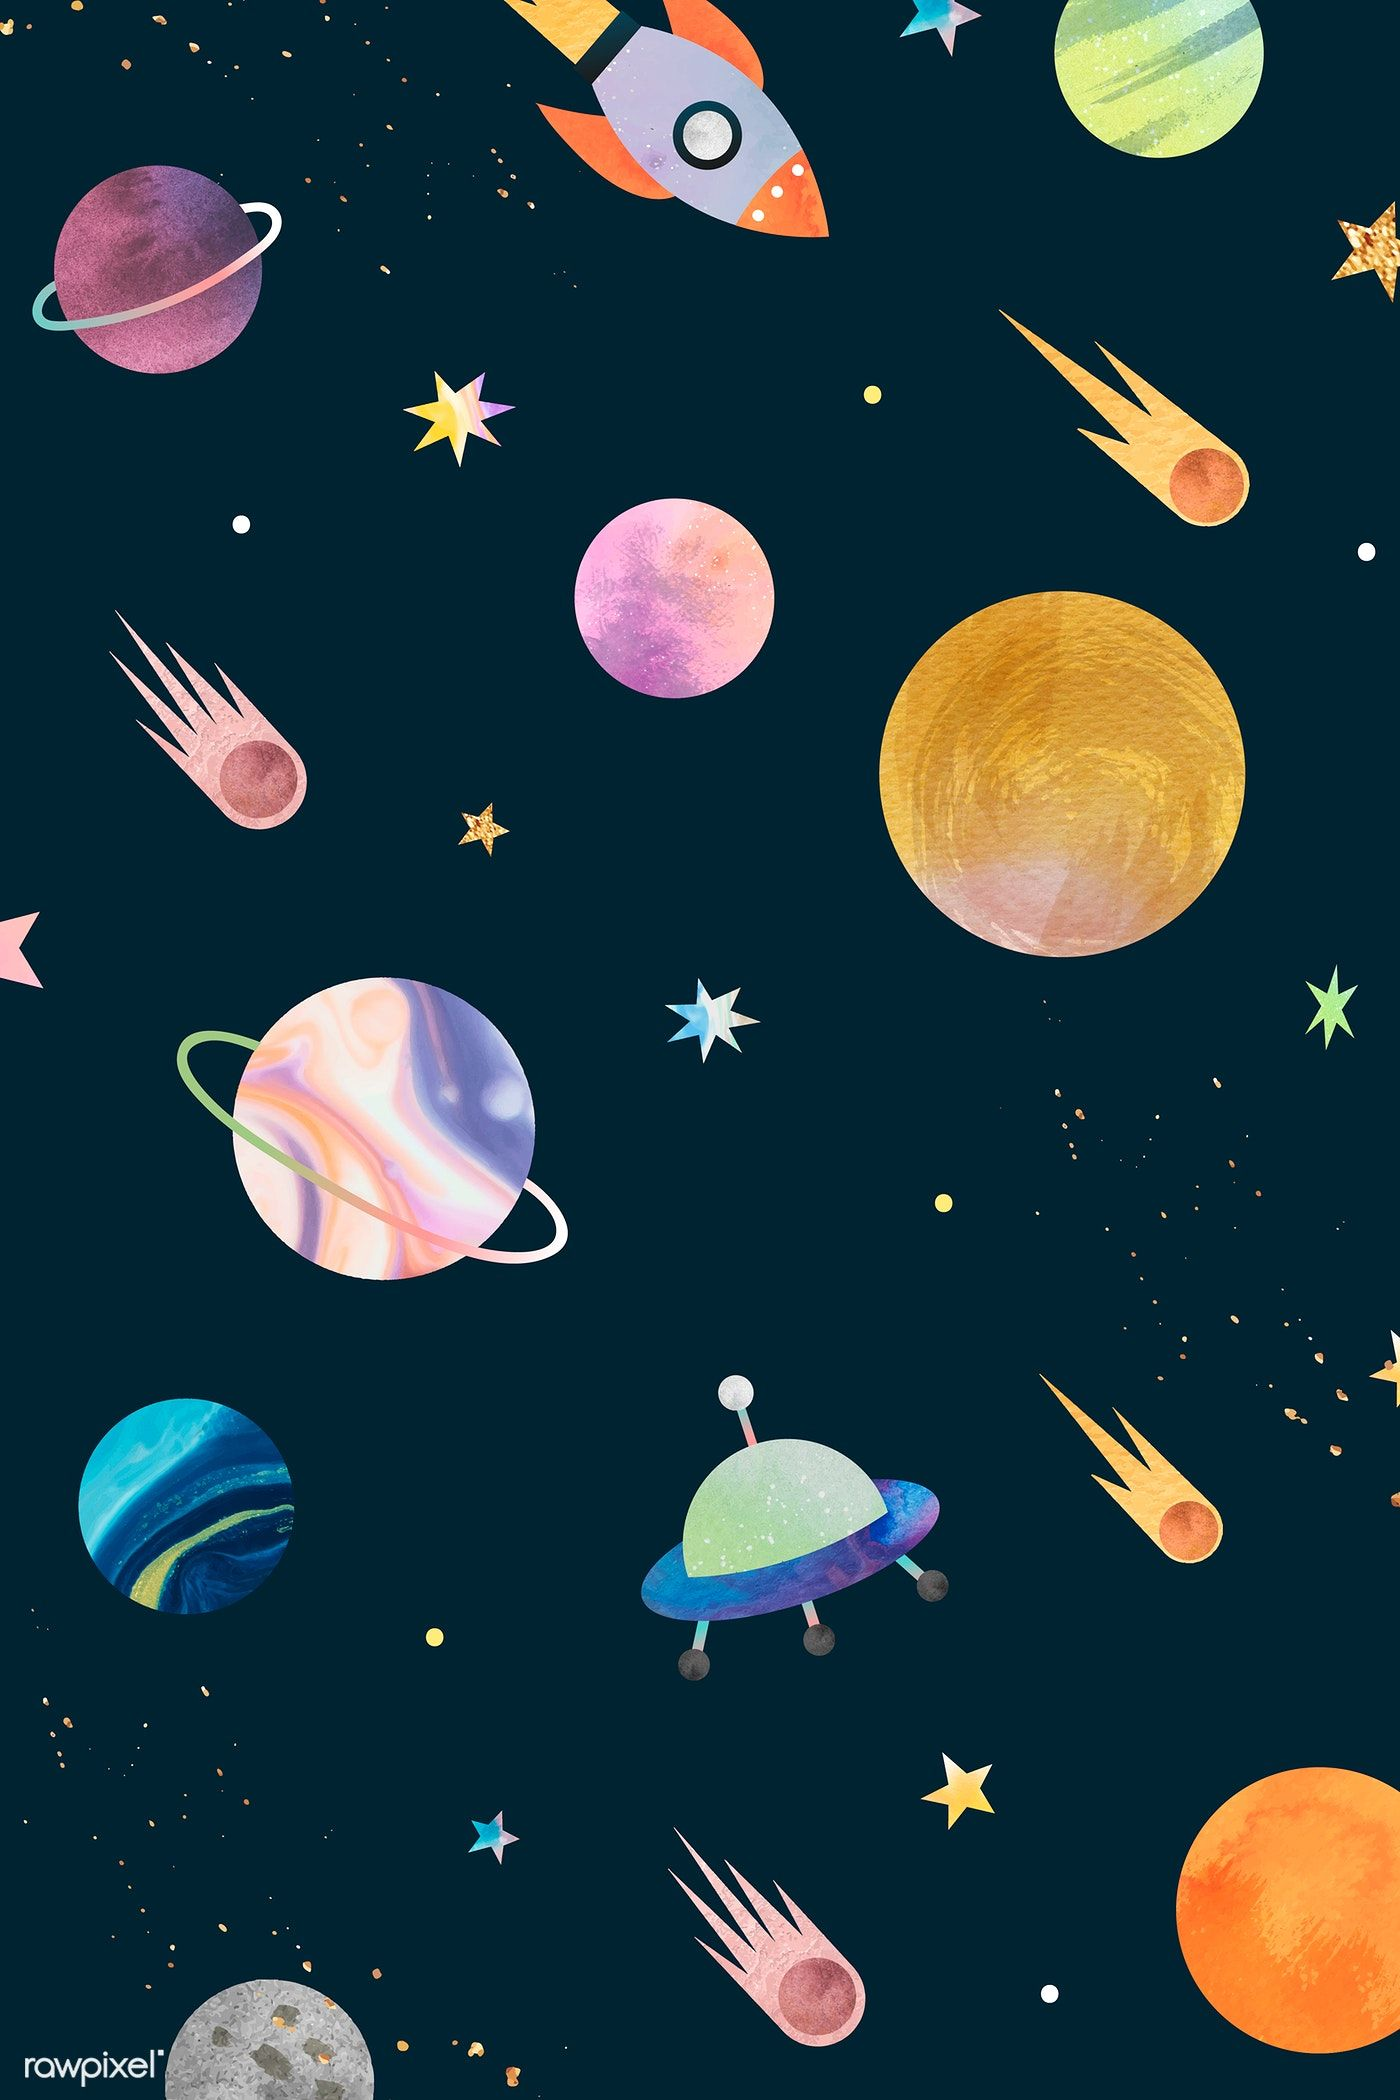 Download Premium Image Of Colorful Galaxy Watercolor Doodle On